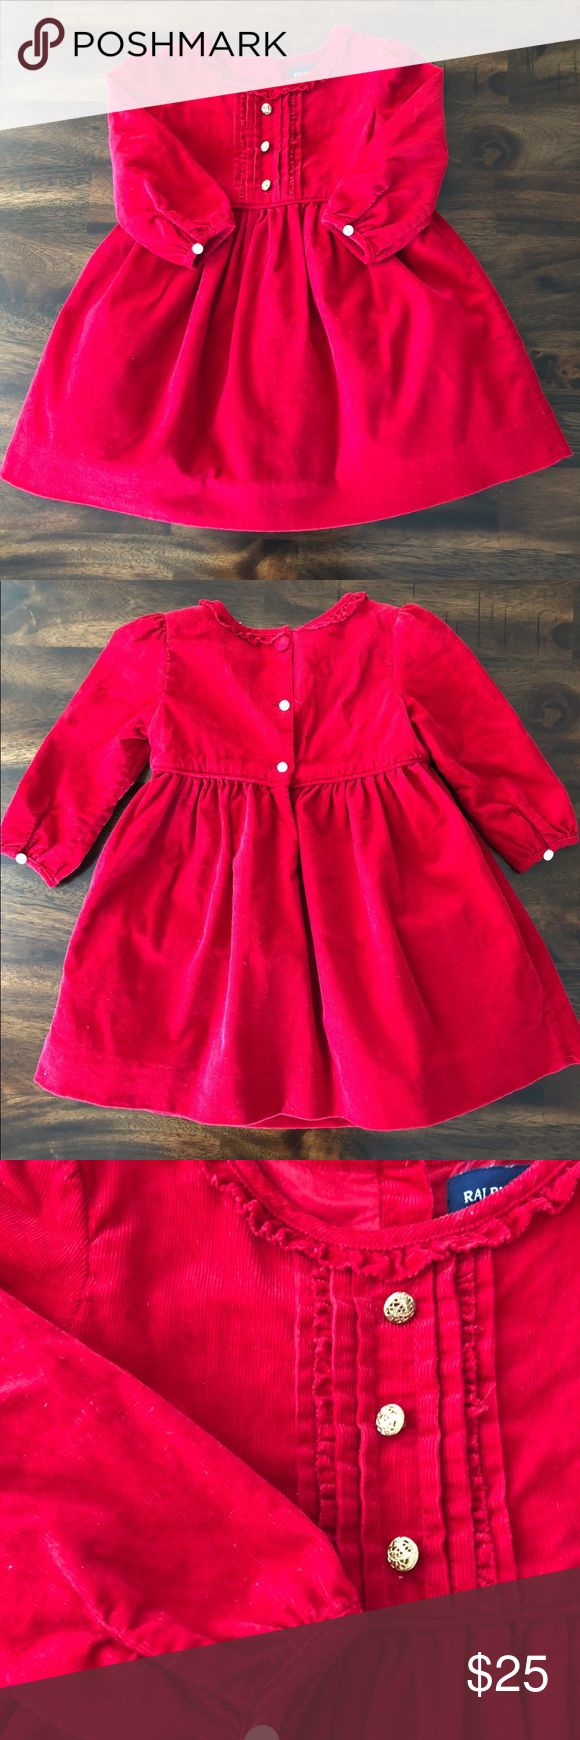 Ralph Lauren Red Dress Super Cute Ralph Lauren Red Corduroy Dress with gold button details. Size: 12M Brand New WOT Ralph Lauren Dresses